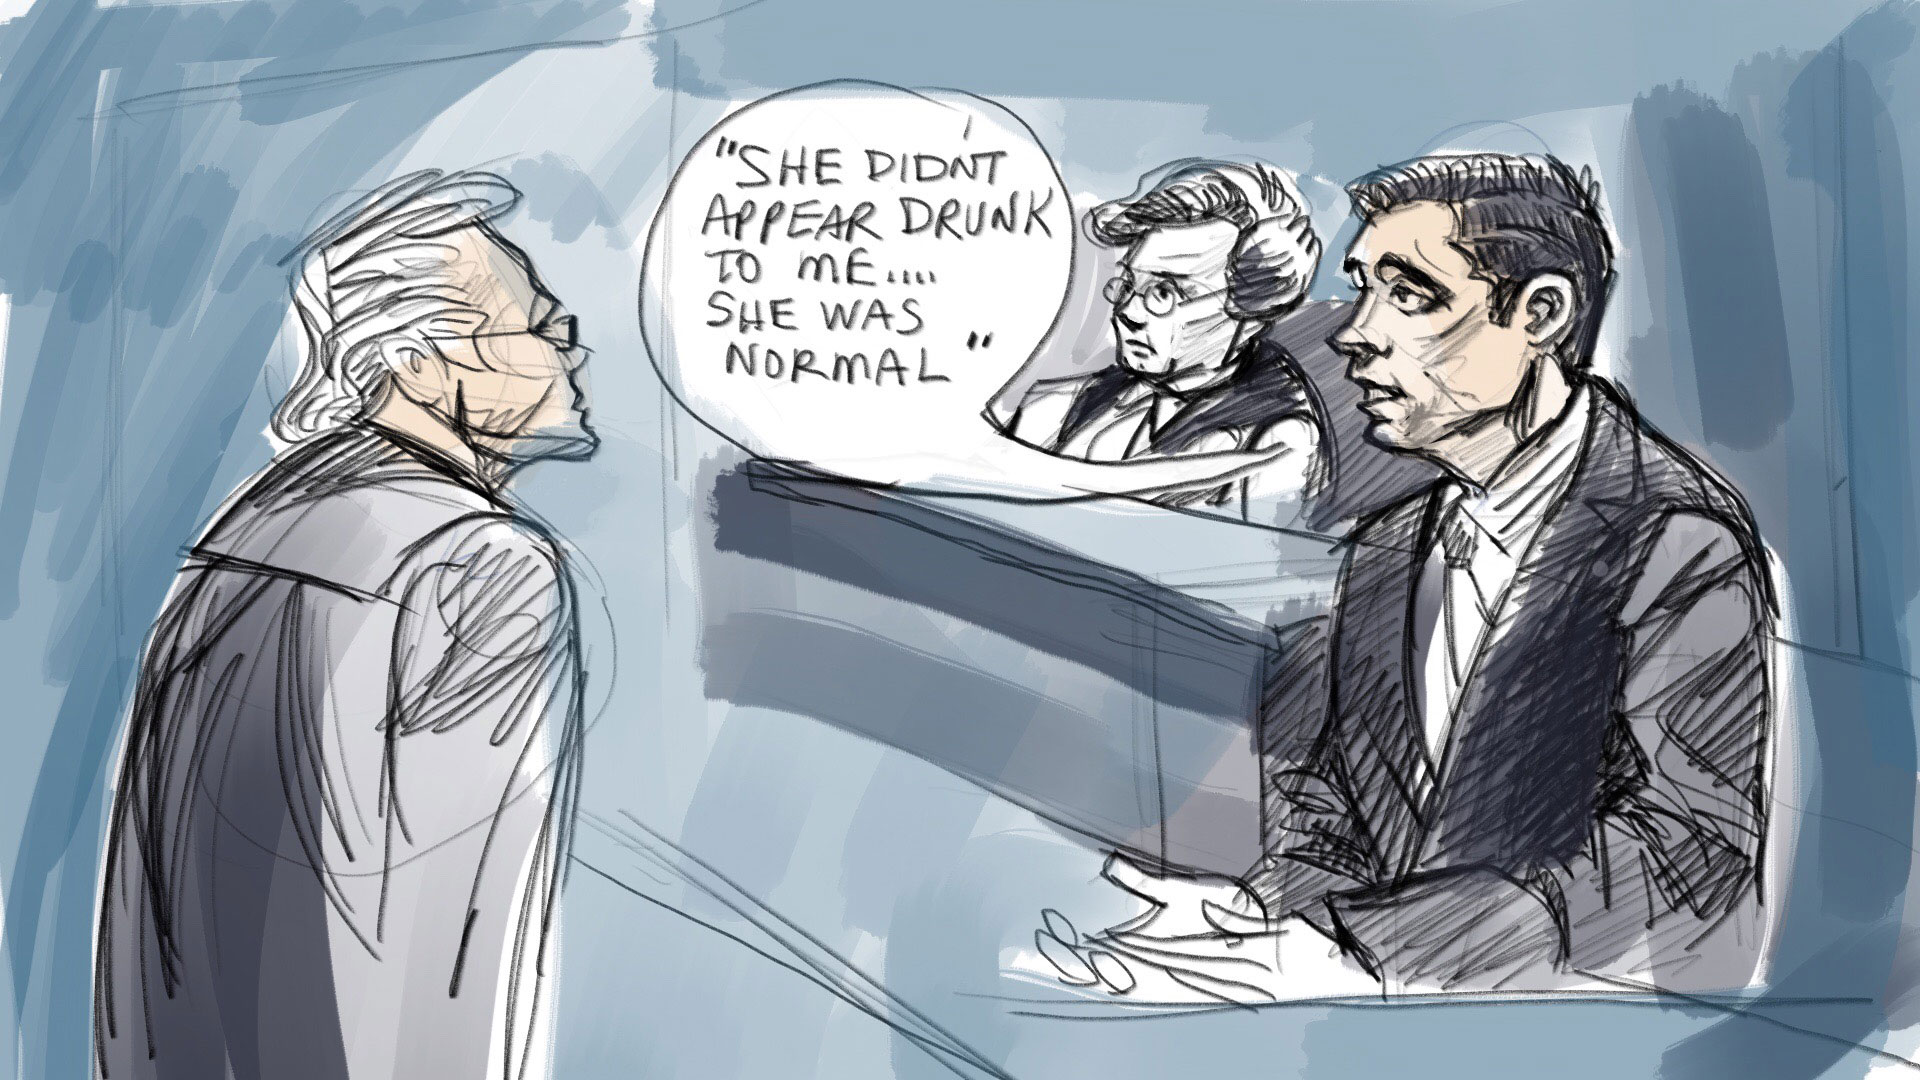 Toronto police officer accused of sexual assault testifies complainant gave her consent